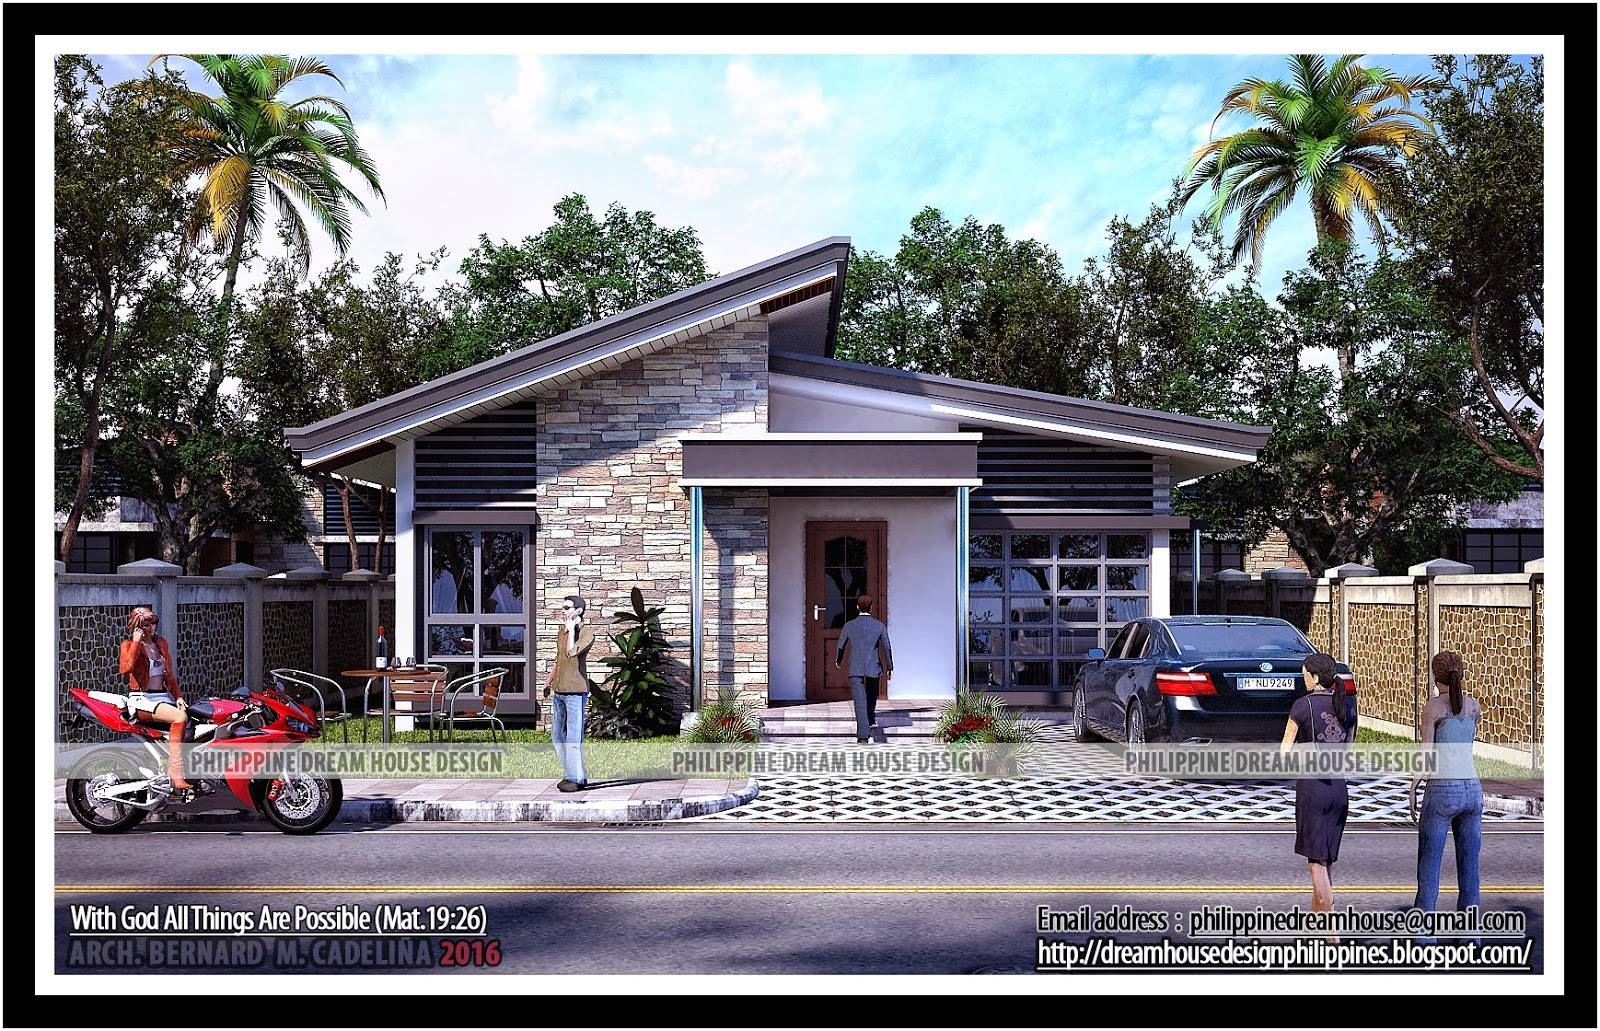 Philippine Dream House Design Two Bedroom Bungalow House Plans 86363